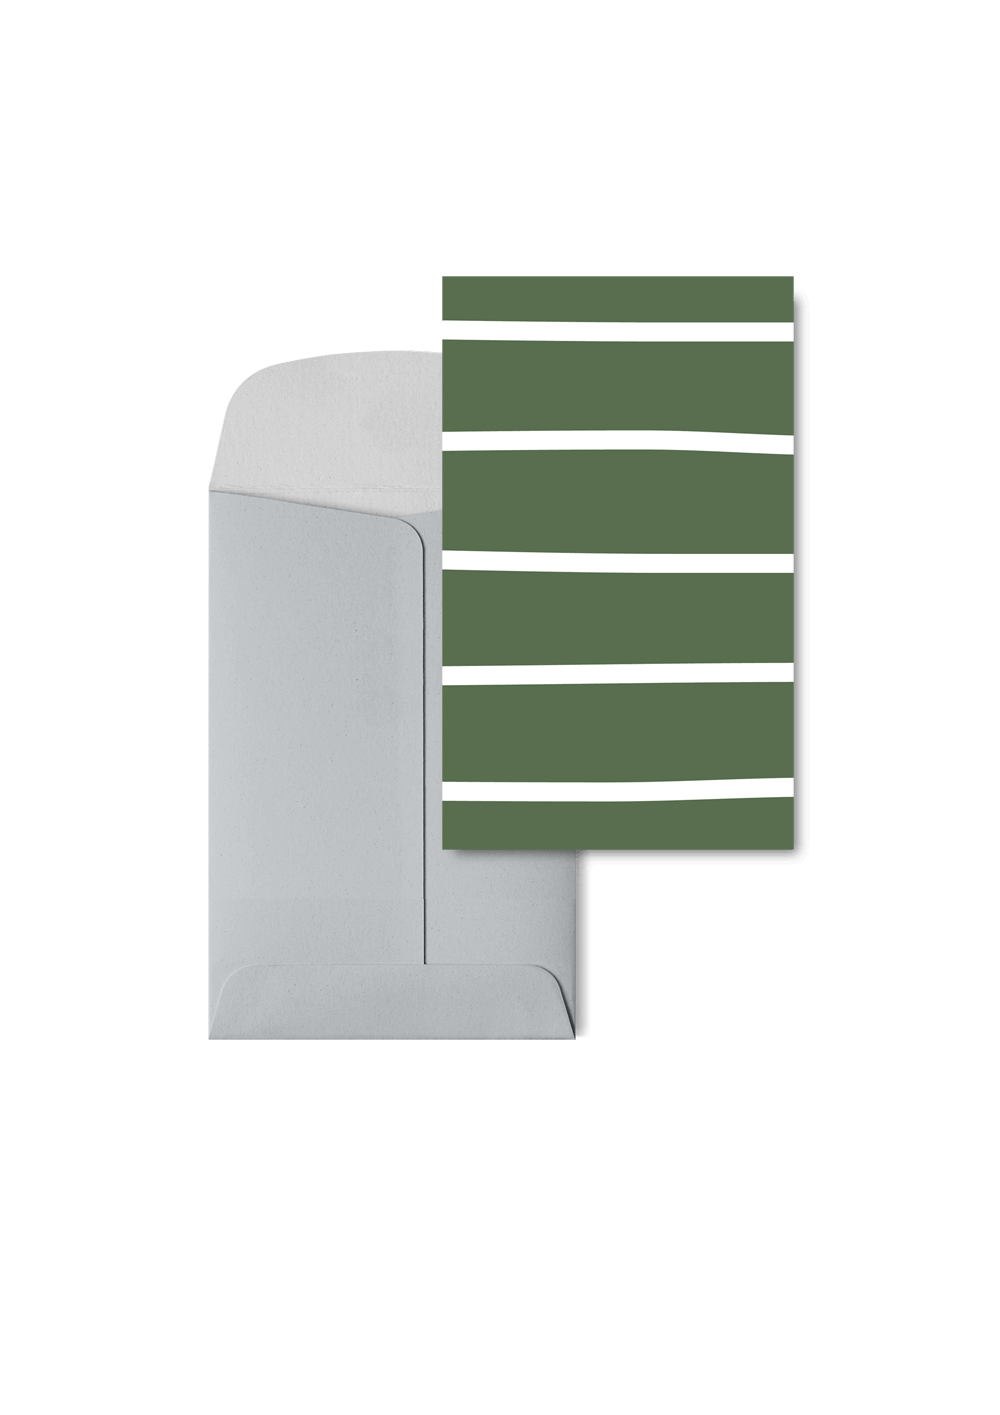 Stripetown Green, 6 Karten Set by Karten Design Fabrik. Supplier of designer Greeting Cards, Gift Wrap, Christmas Cards & Invitations to leading design stores including Connox, Modulor, Magazin & Manufactum.